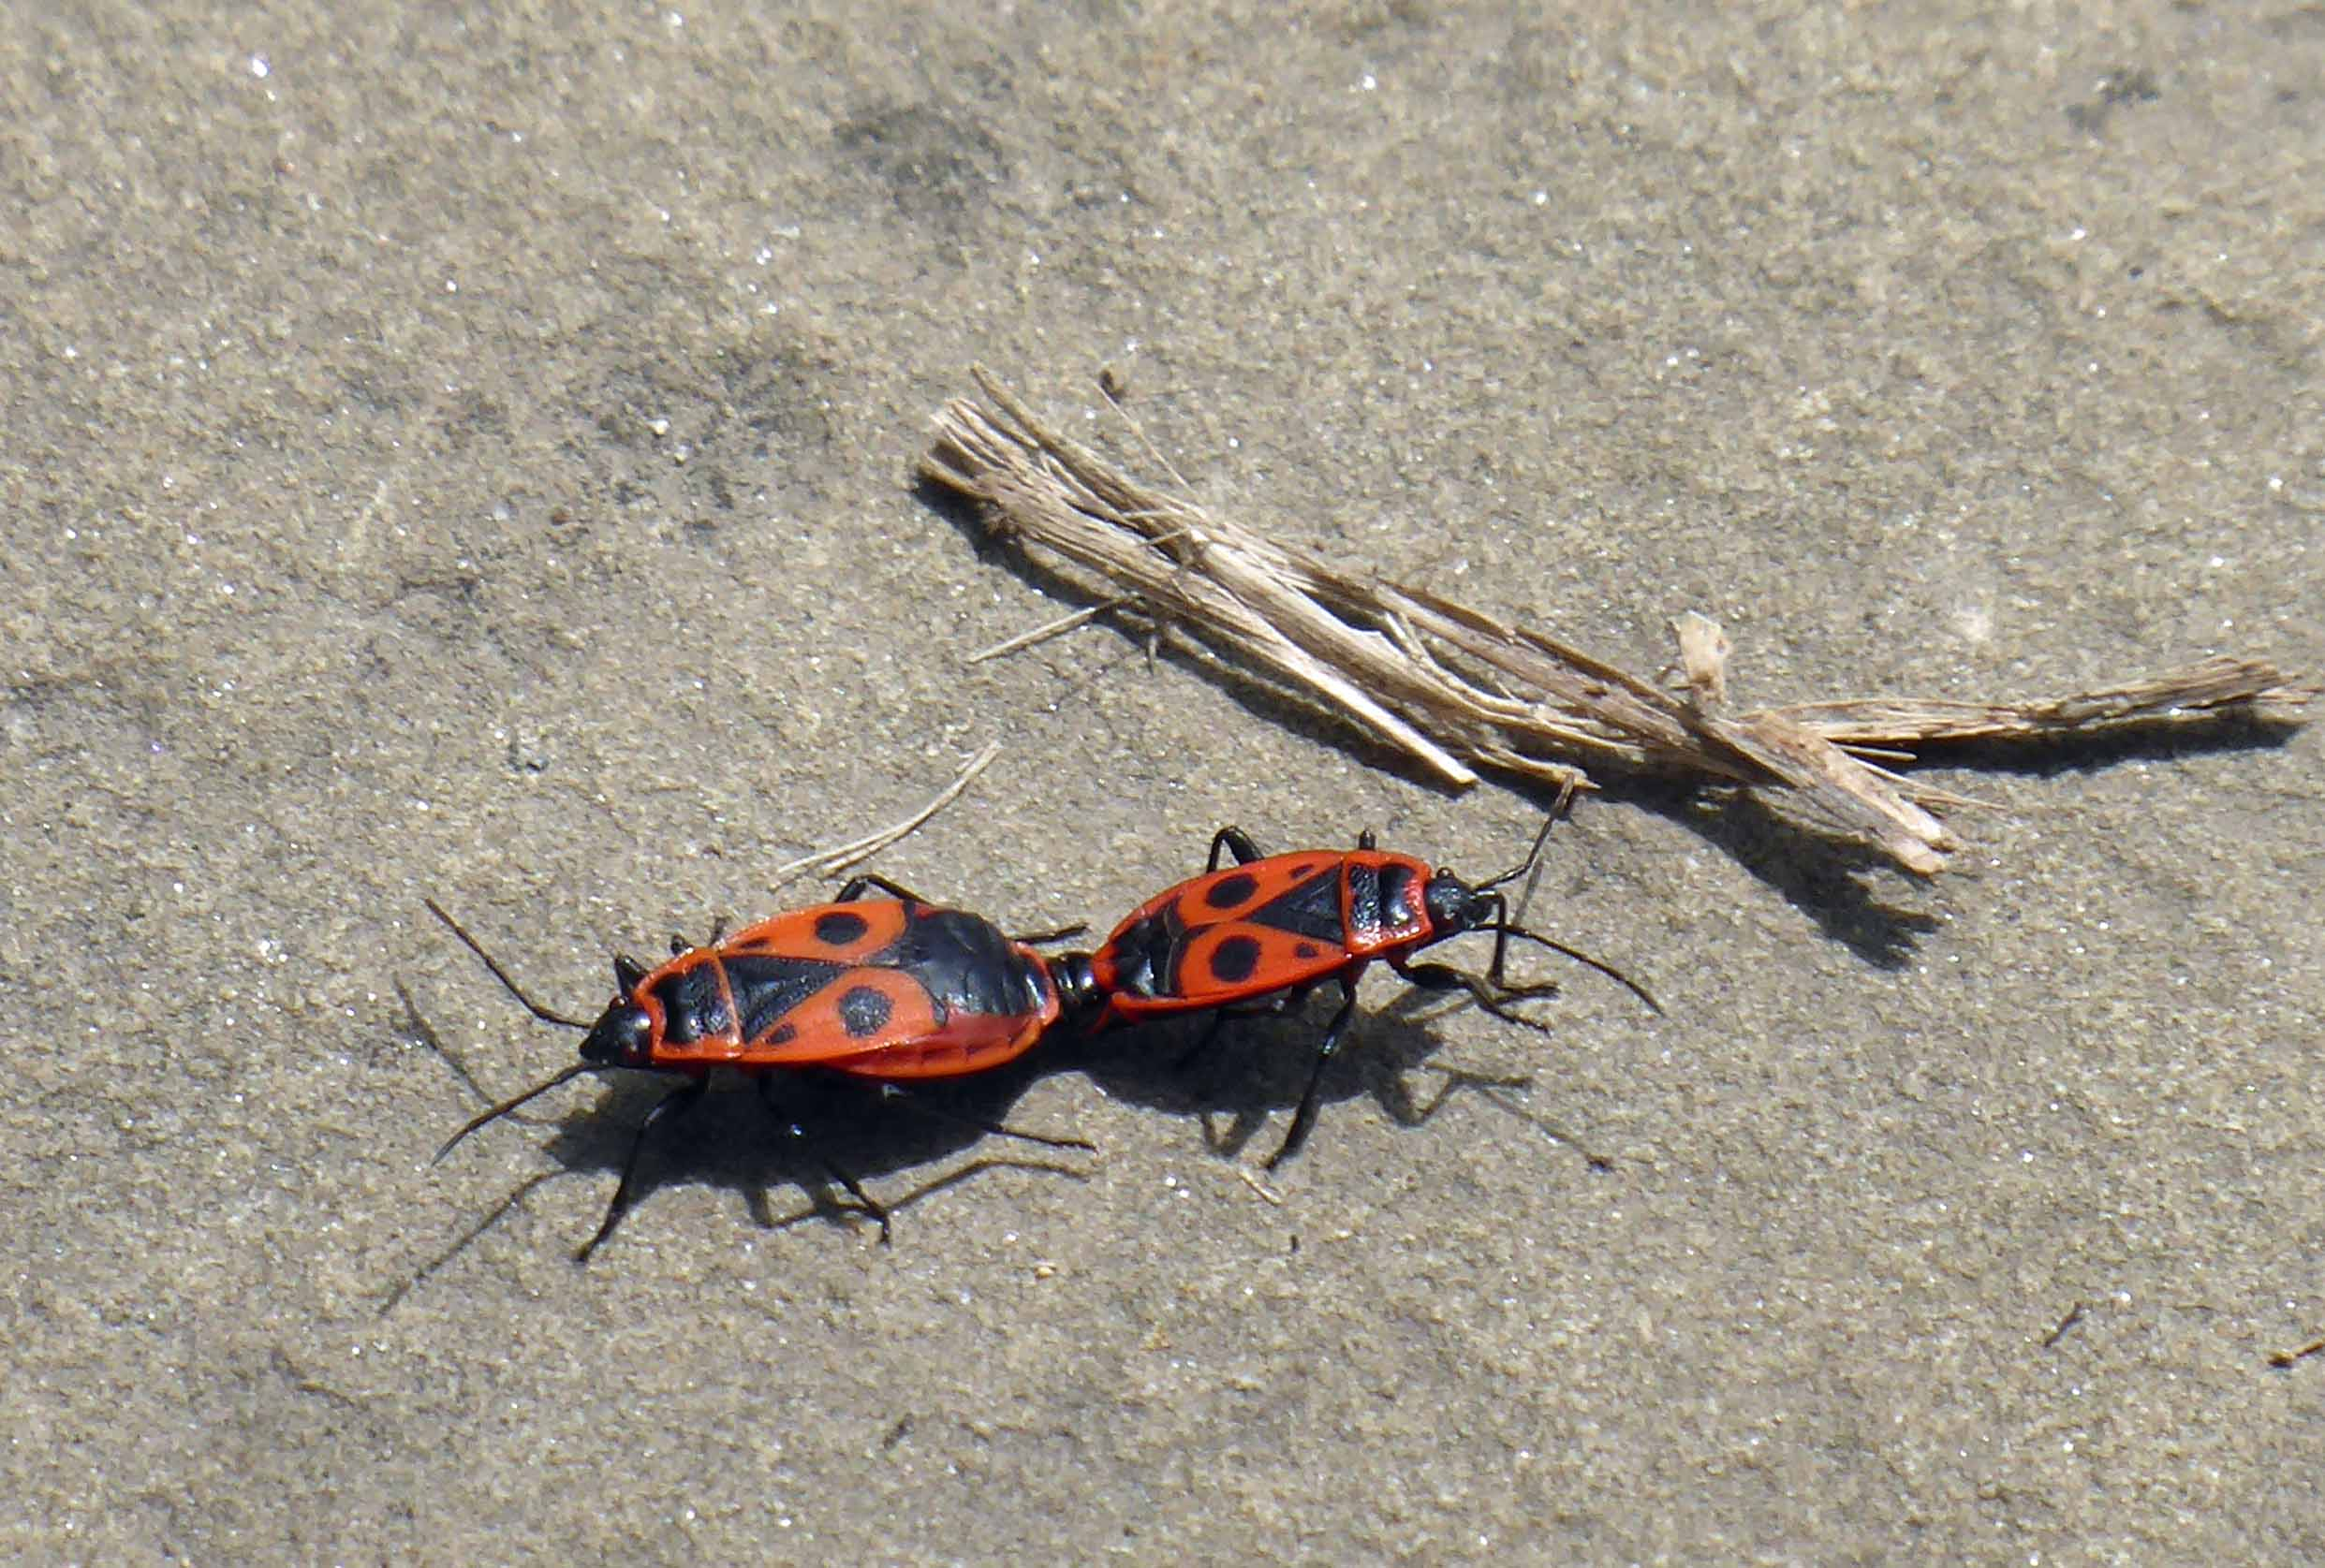 Two red and black beetles mating on the ground